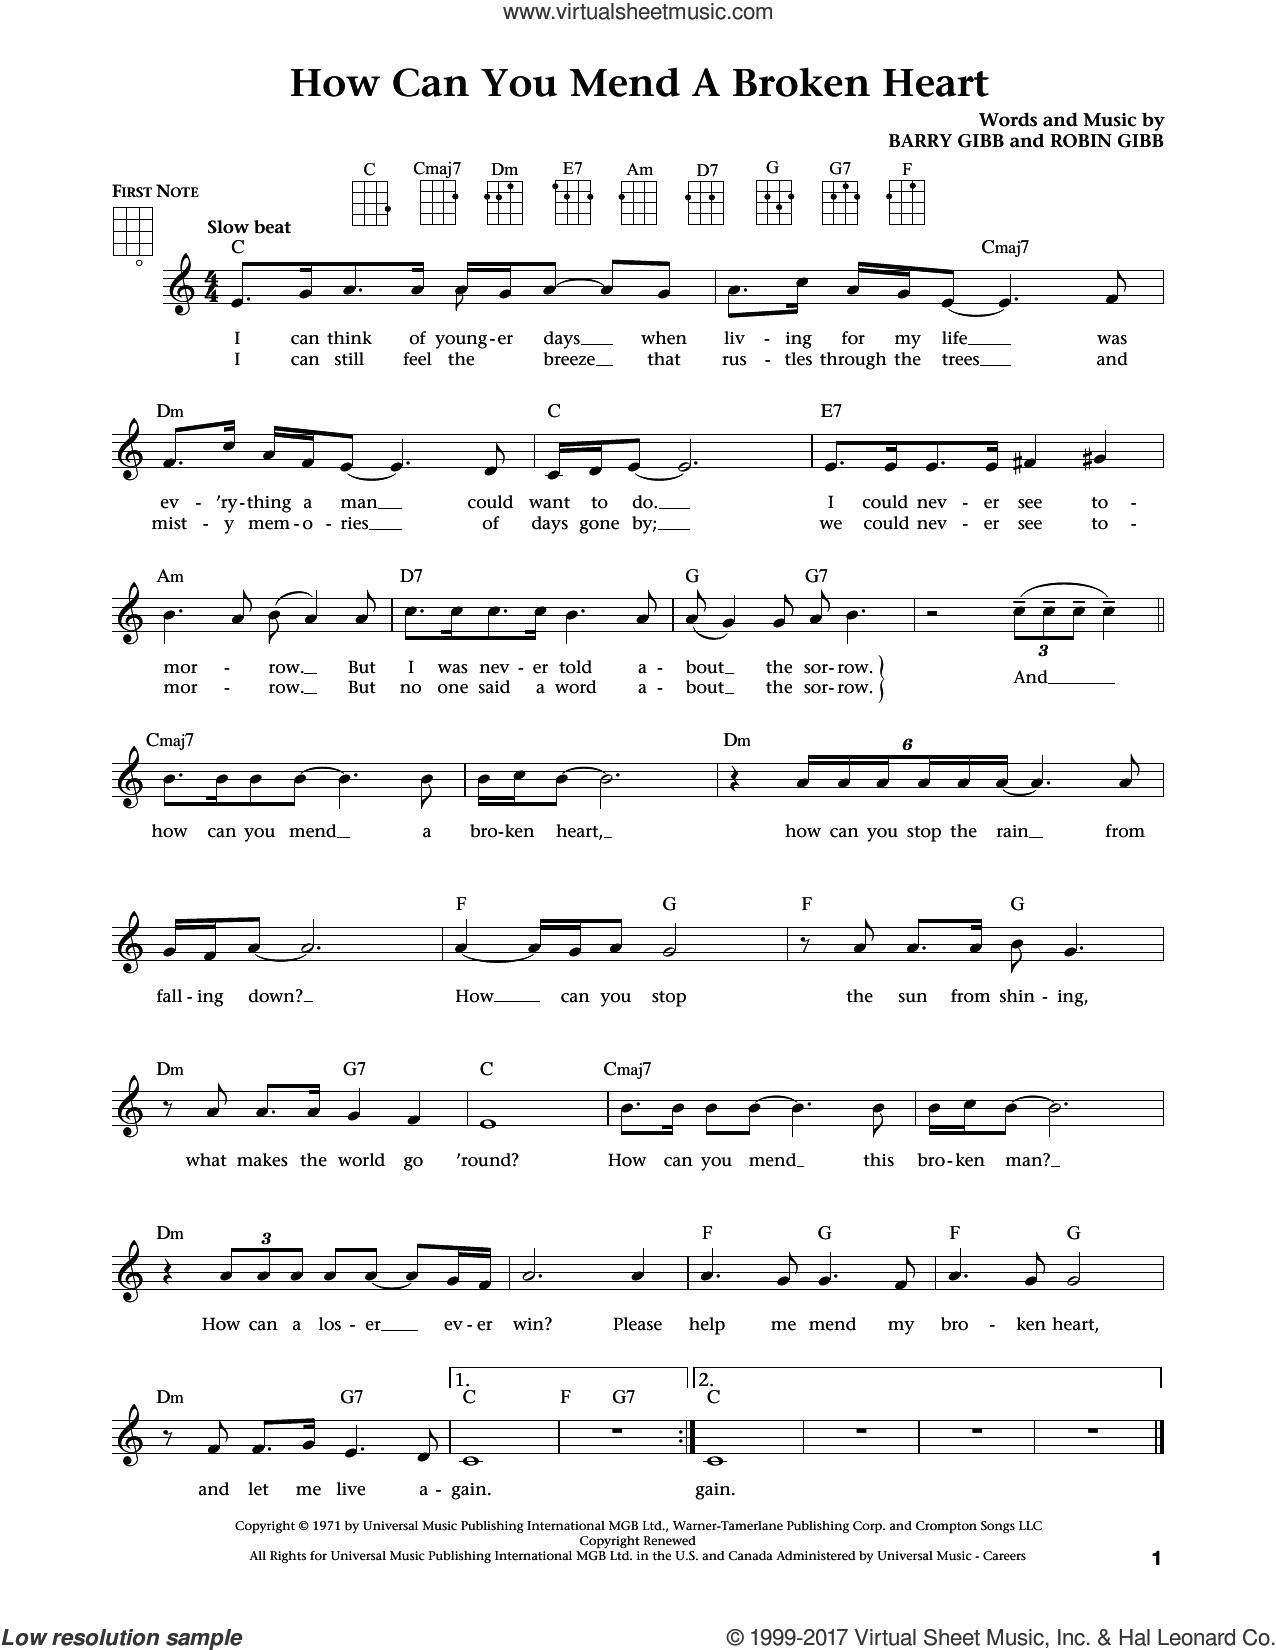 How Can You Mend A Broken Heart (from The Daily Ukulele) (arr. Liz and Jim Beloff) sheet music for ukulele by Barry Gibb, Jim Beloff, Liz Beloff, Bee Gees and Robin Gibb, intermediate skill level